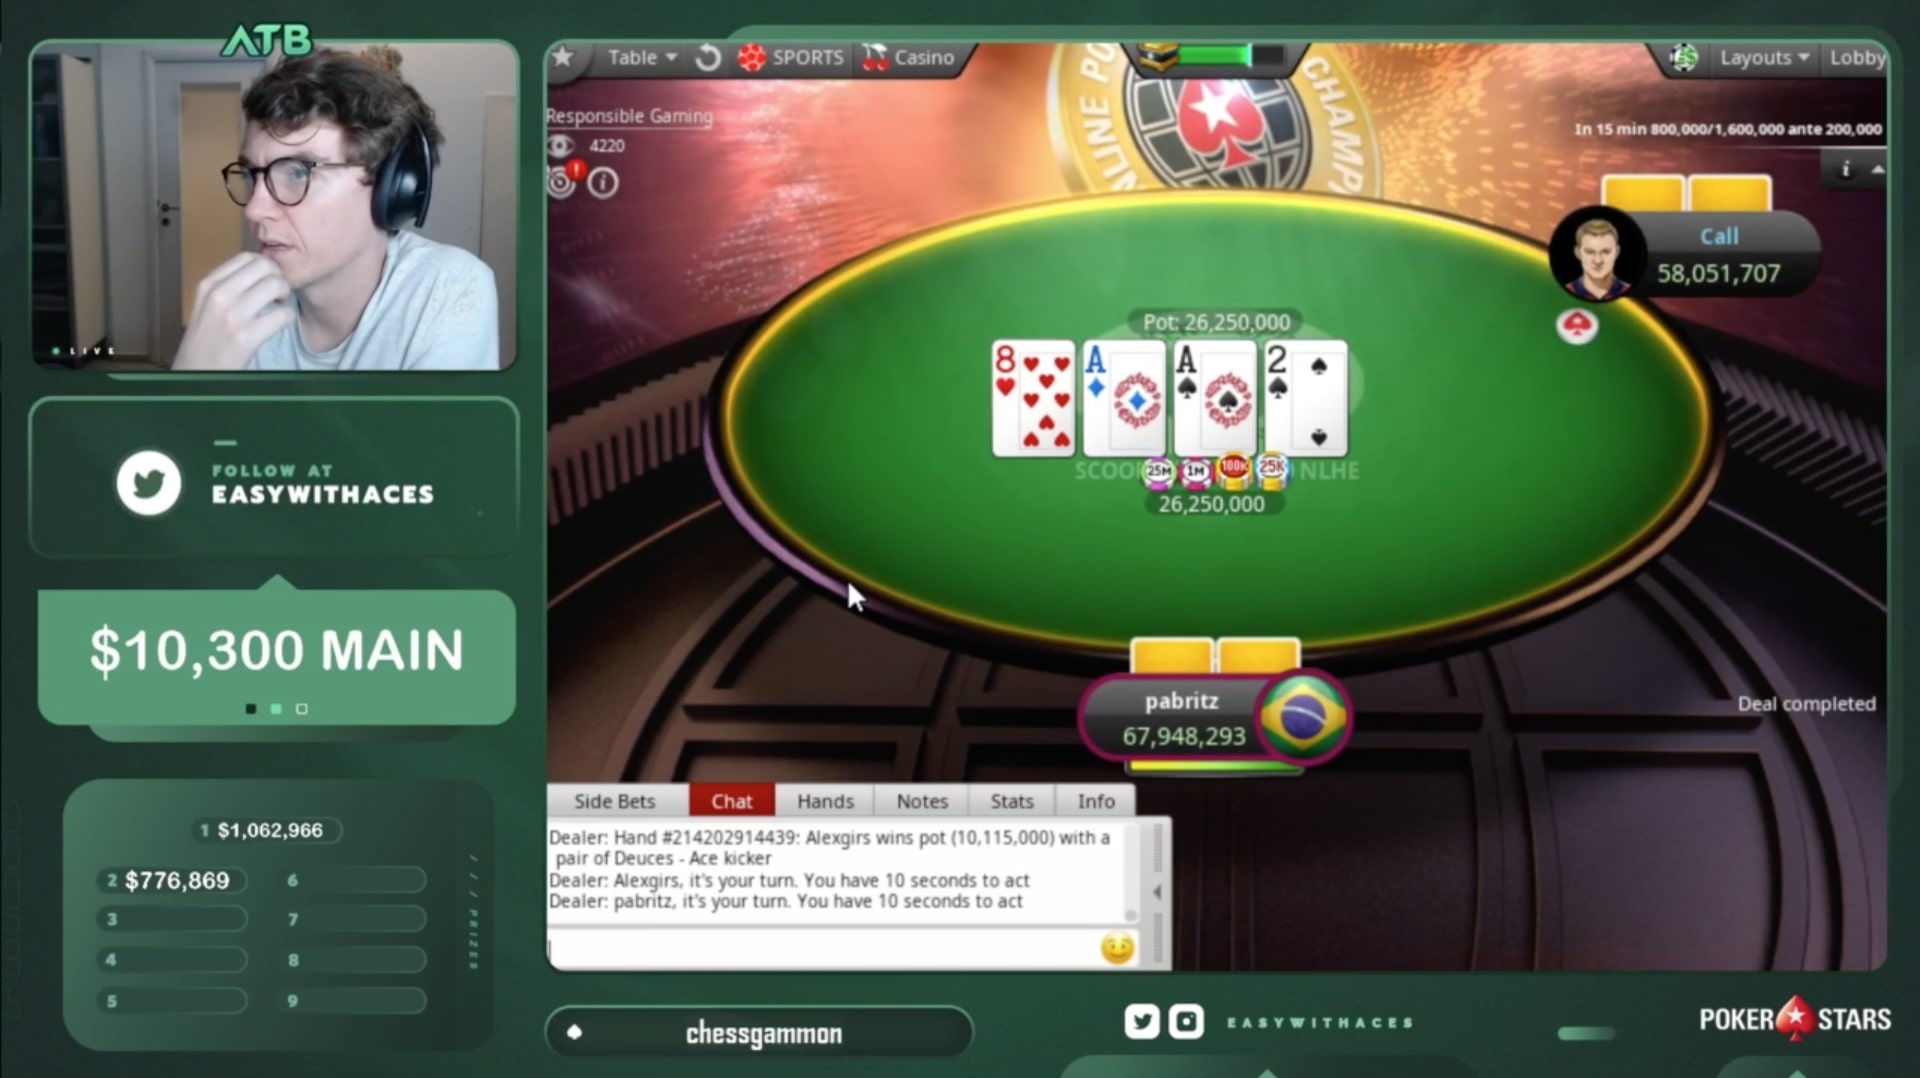 Белорус Александр «alexgirs» Гирс выиграл SCOOP ME на PokerStars и получил $920,595 10